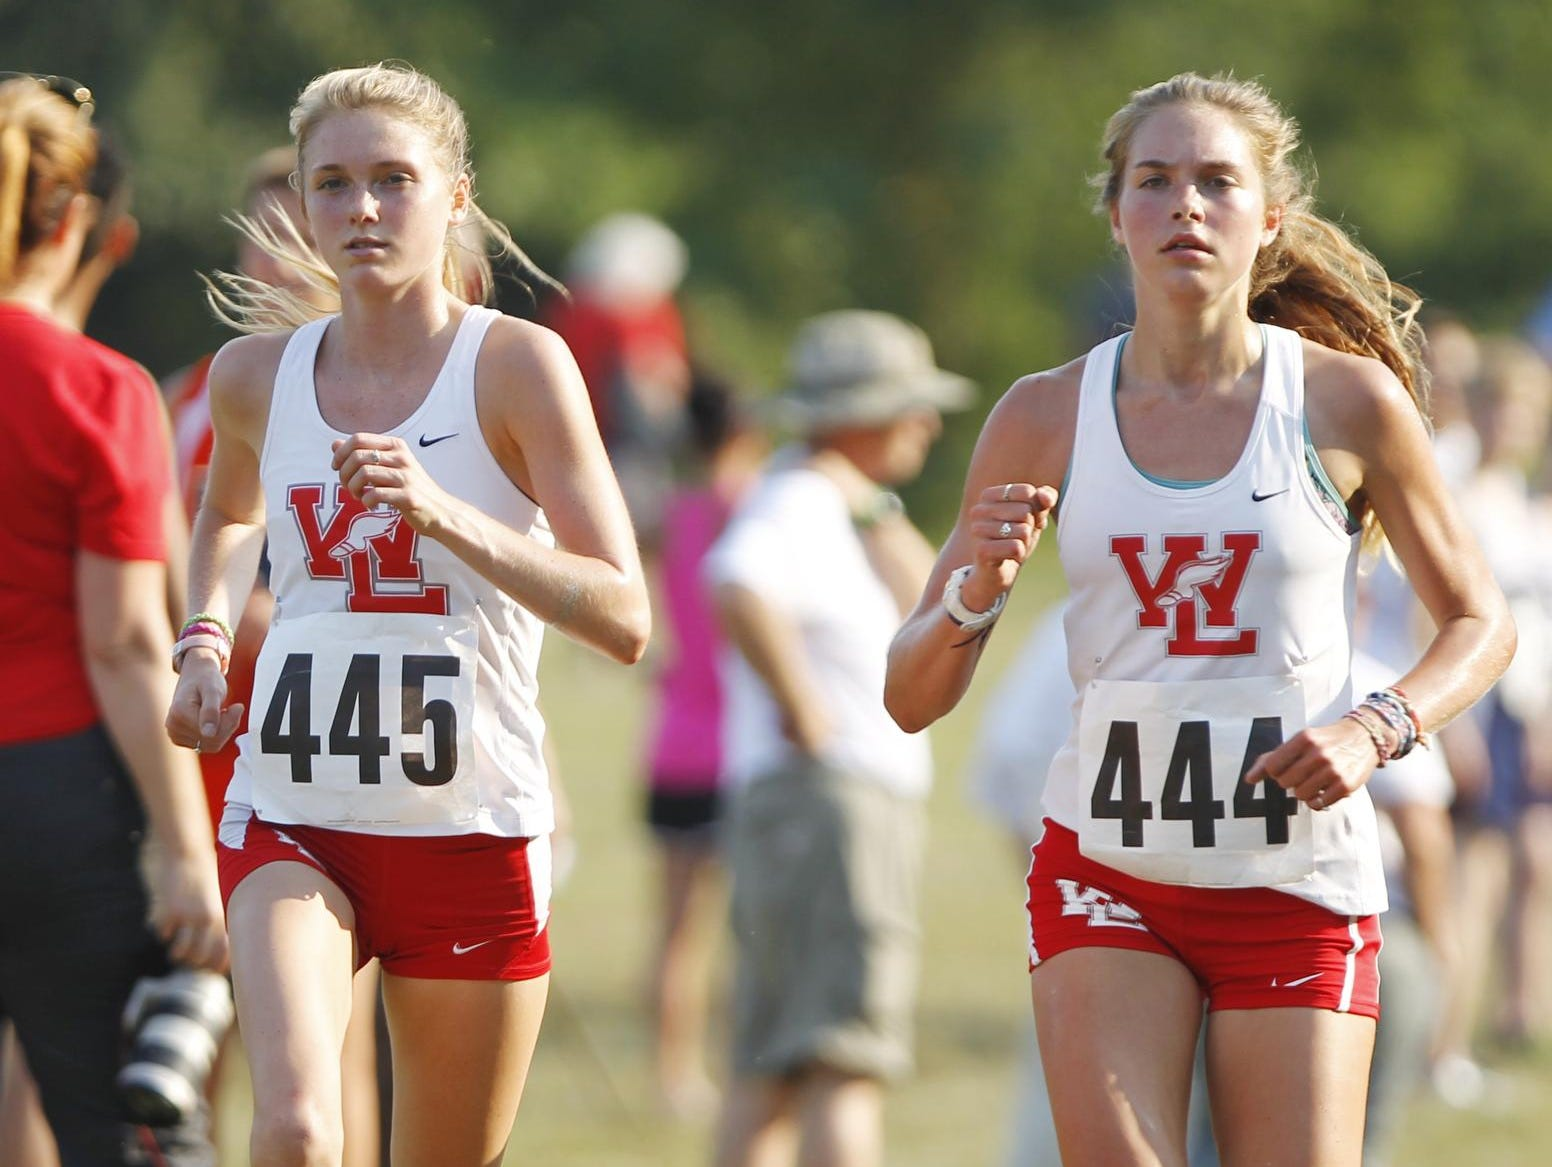 West Lafayette's Lauren Johnson, left, and sister Kristen run side by side to win the City County Cross Country meet Tuesday, September 1, 2015, at the Tippecanoe Amphitheater. Both girls finished with the time of 20:28, but Lauren was credited with first and Kristen second. The West Lafayette girls won the team competition with a score of 27 points. It is the sixth year in a row that the West Lafayette girls have won the City County Cross Country meet.